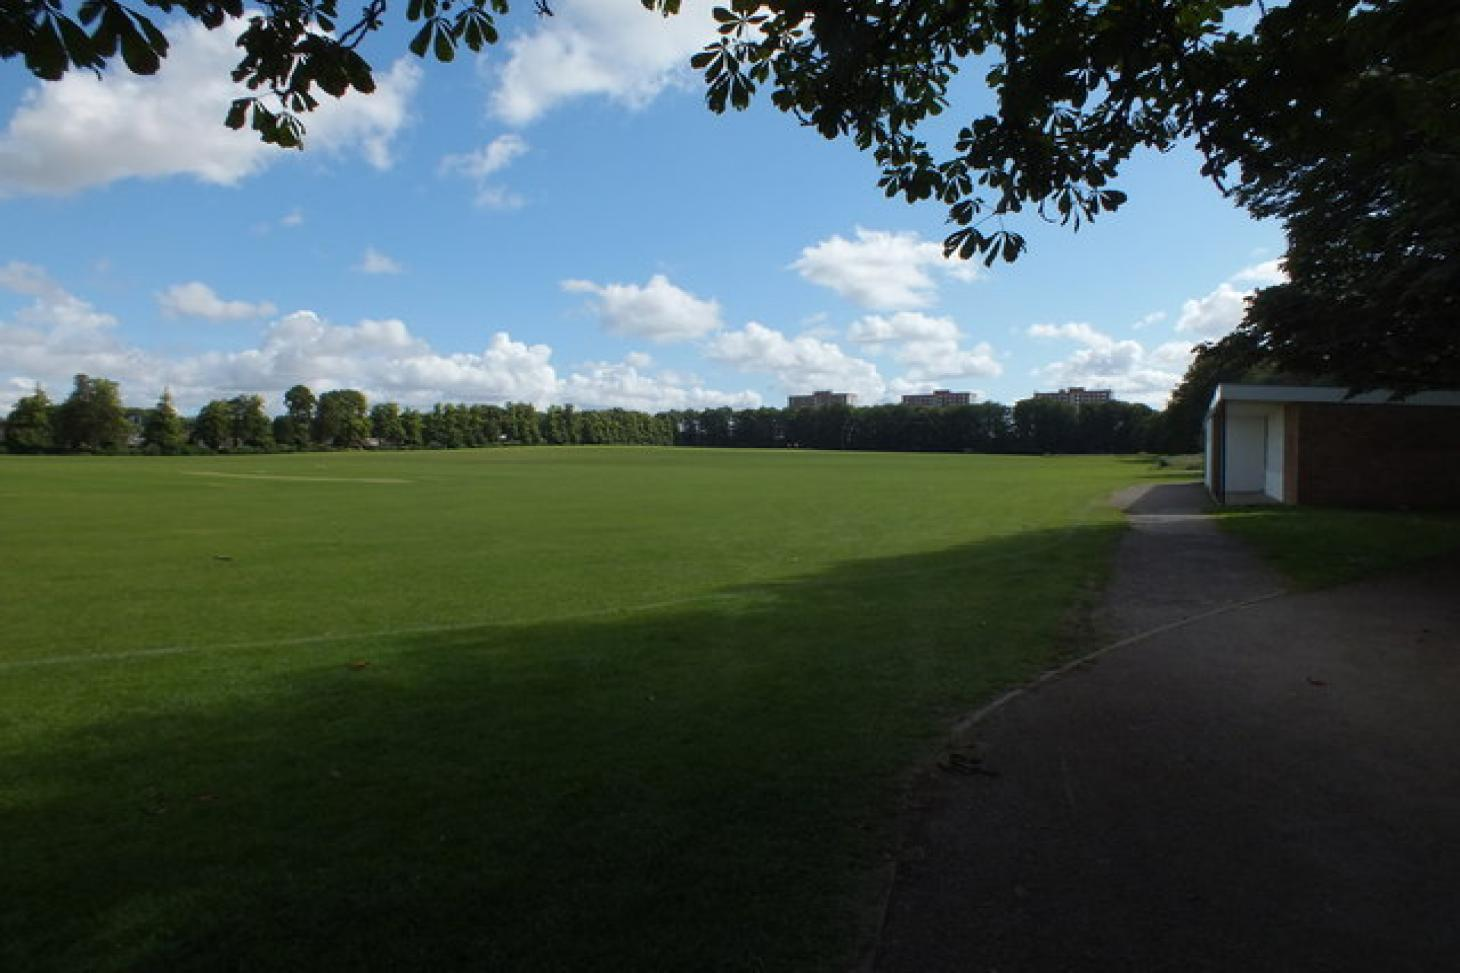 Leagrave Park 11 a side | Grass football pitch